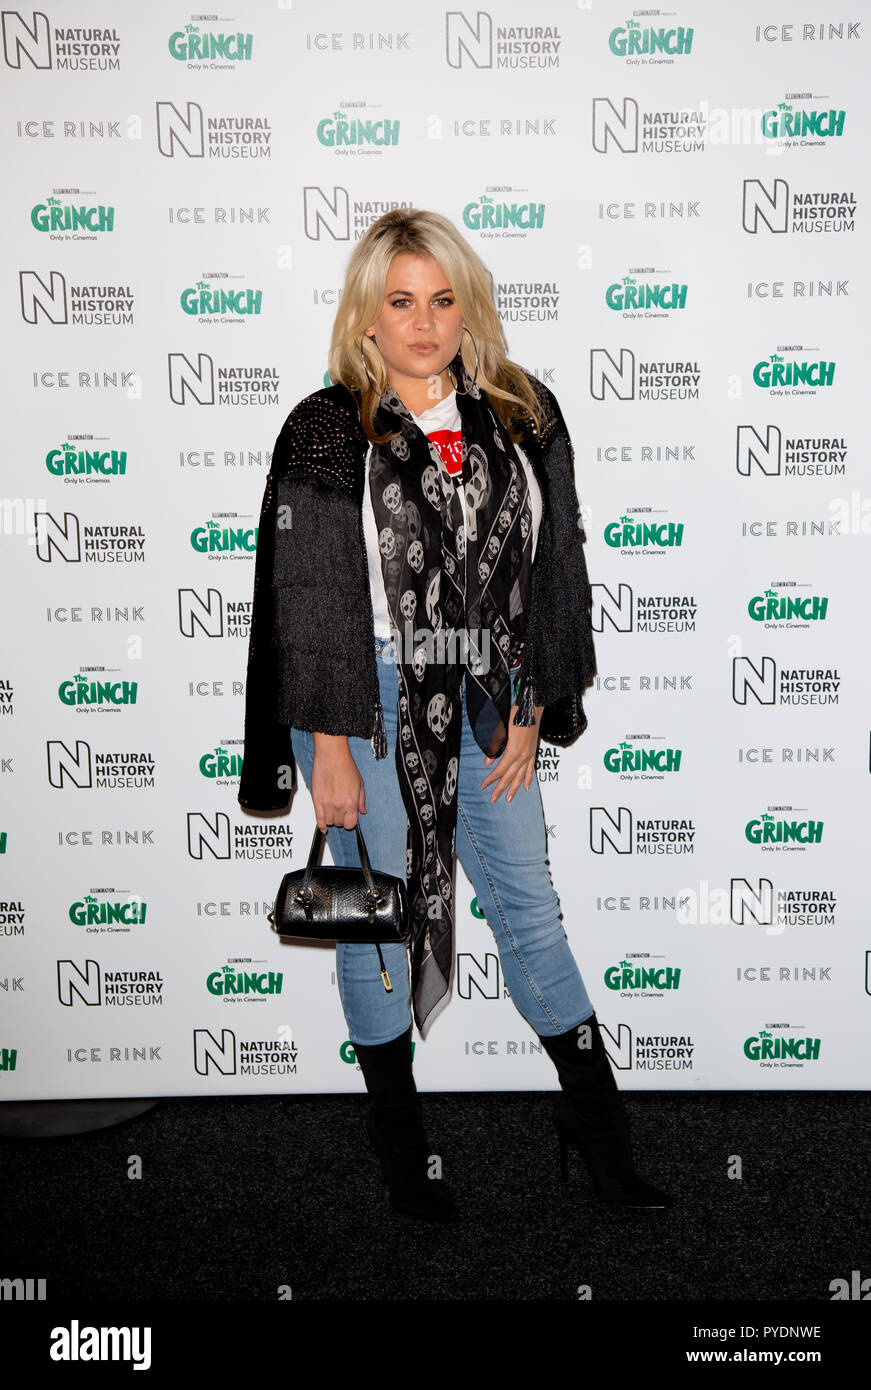 London Uk 24th October 2018 The Natural History Museum Kensington Nadia Essex attends the natural history museum ice rink launch evening - Stock Image